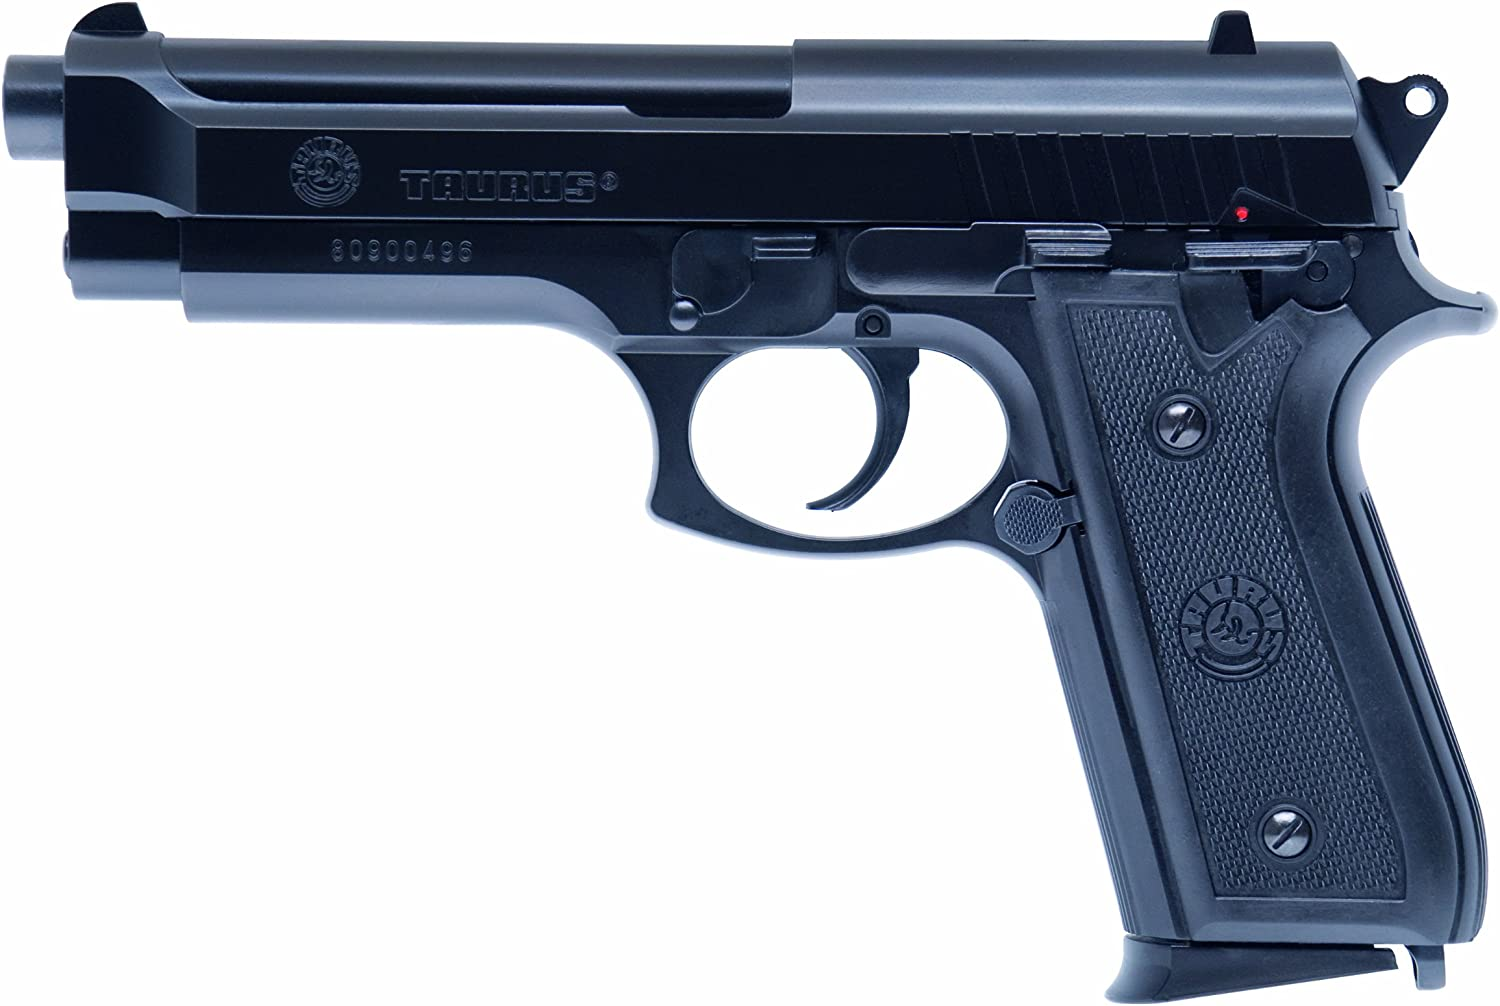 Softair Pistole Taurus Pt92, Federdruck